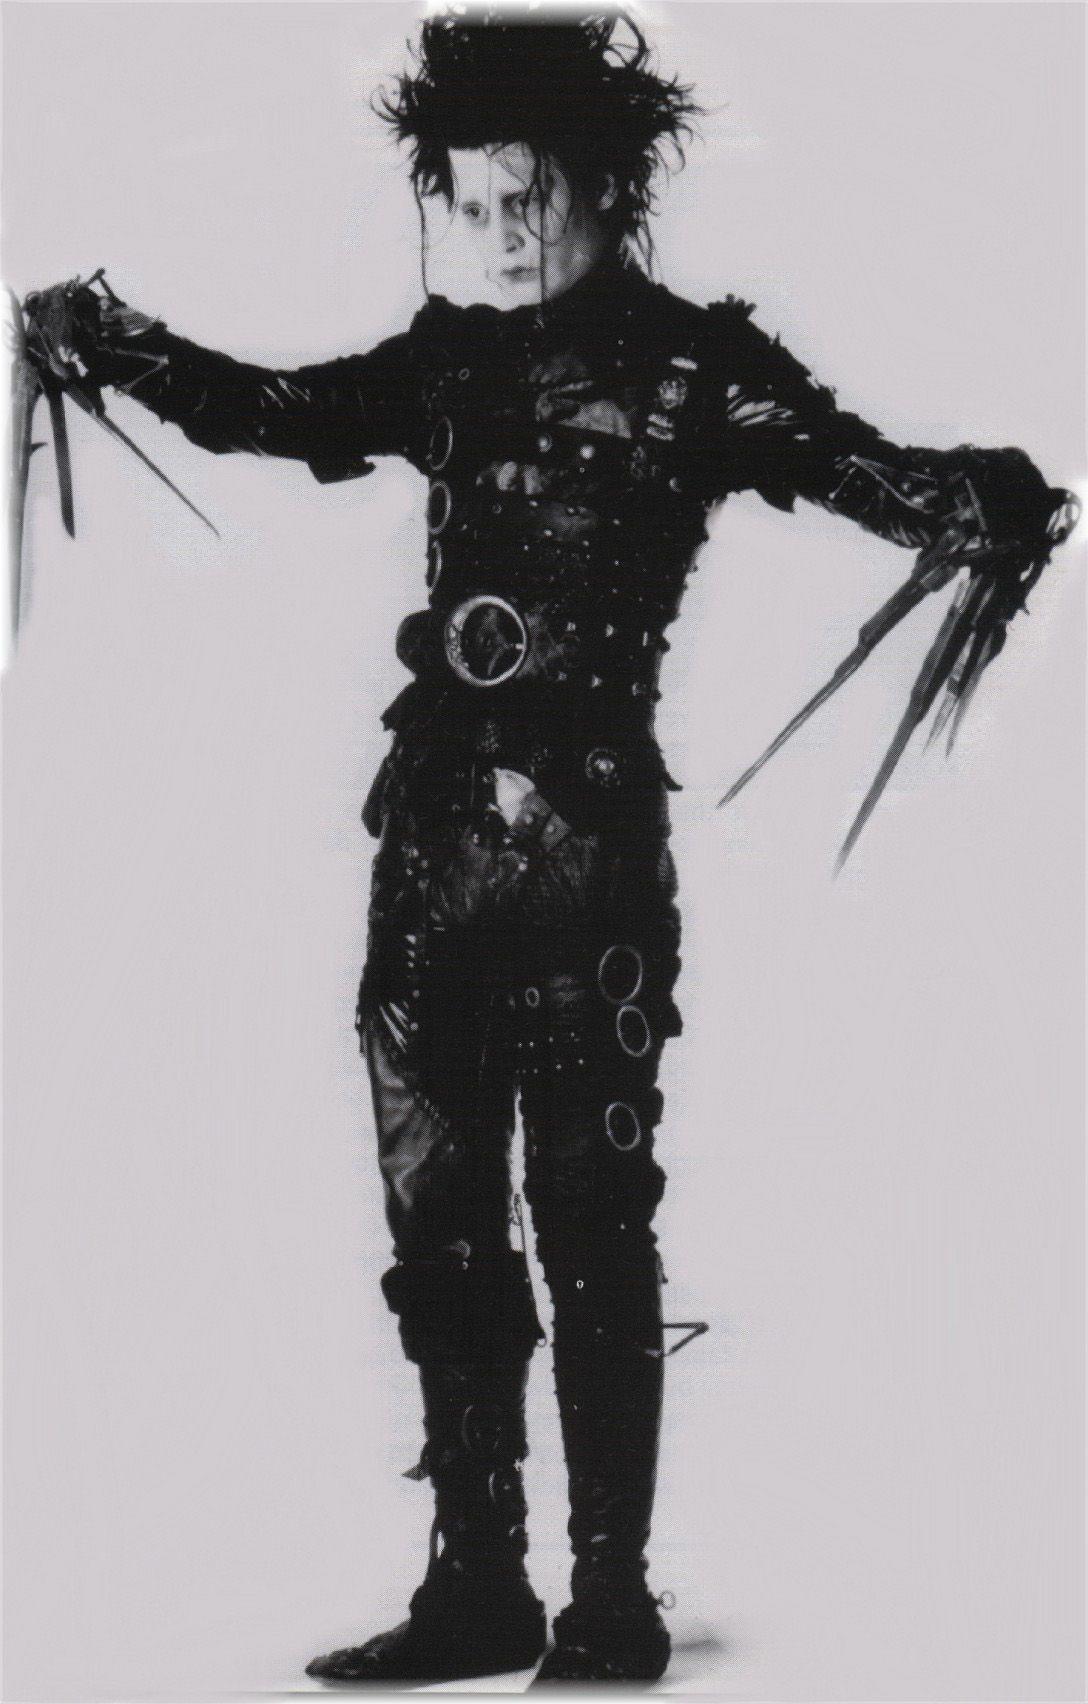 http://images.fanpop.com/images/image_uploads/edward-scissorhands-johnny-depp-180748_1088_1704.jpg